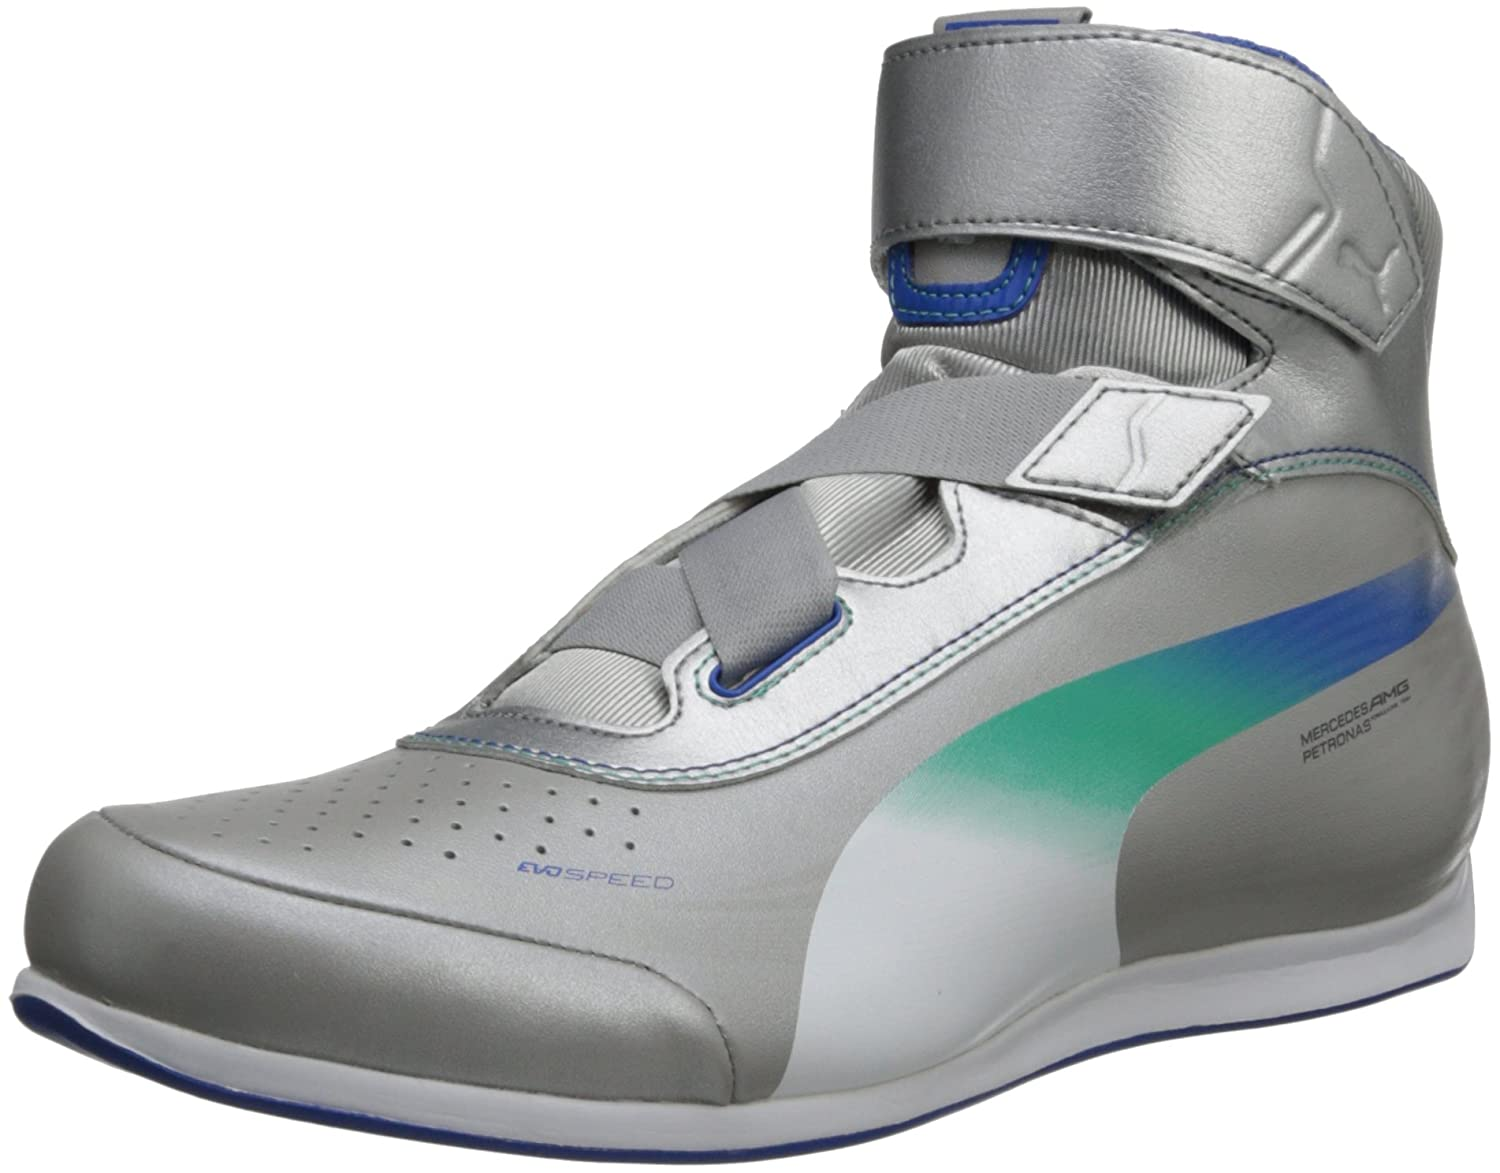 e3000eea3248 Puma Evospeed Mercedes 1.2 Mid Nm Fashion Sneaker  Amazon.co.uk  Shoes    Bags